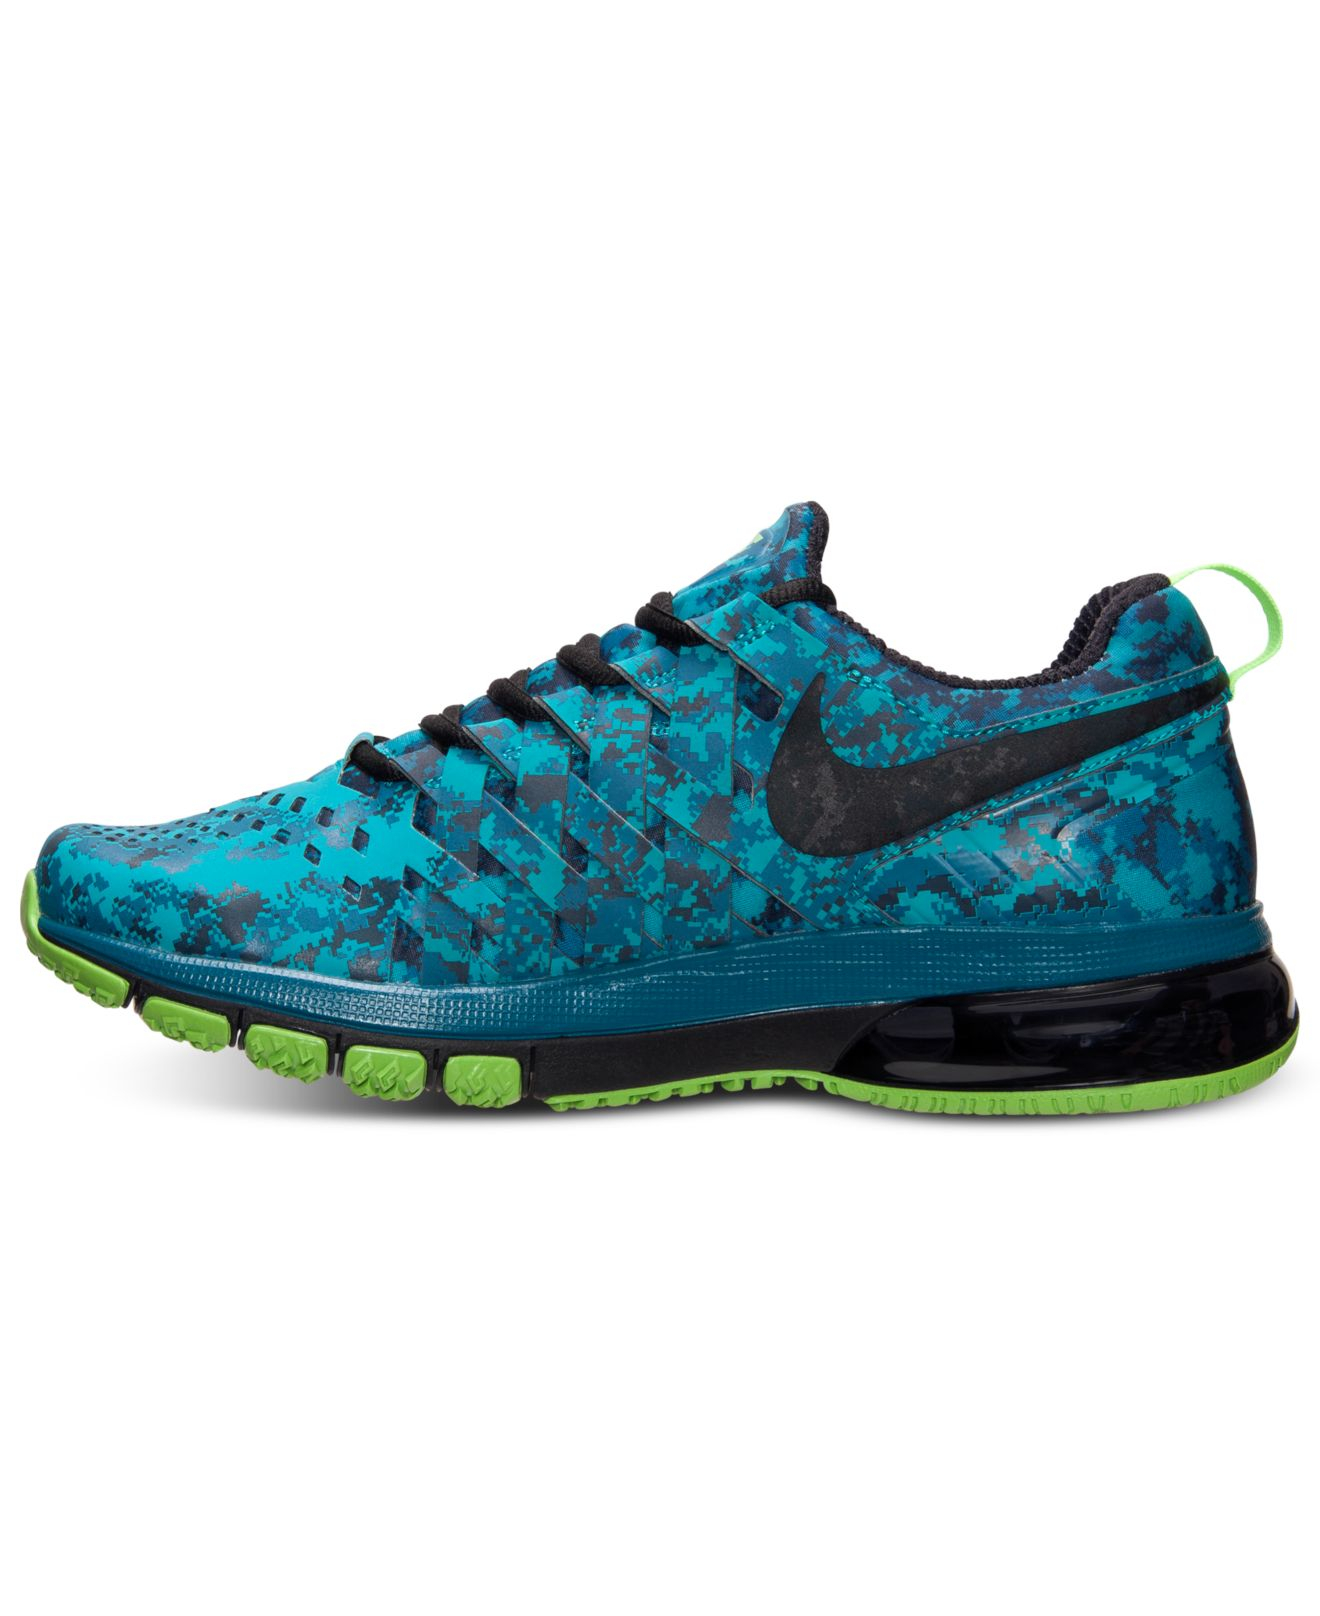 nike men 39 s fingertrap air max training sneakers from. Black Bedroom Furniture Sets. Home Design Ideas